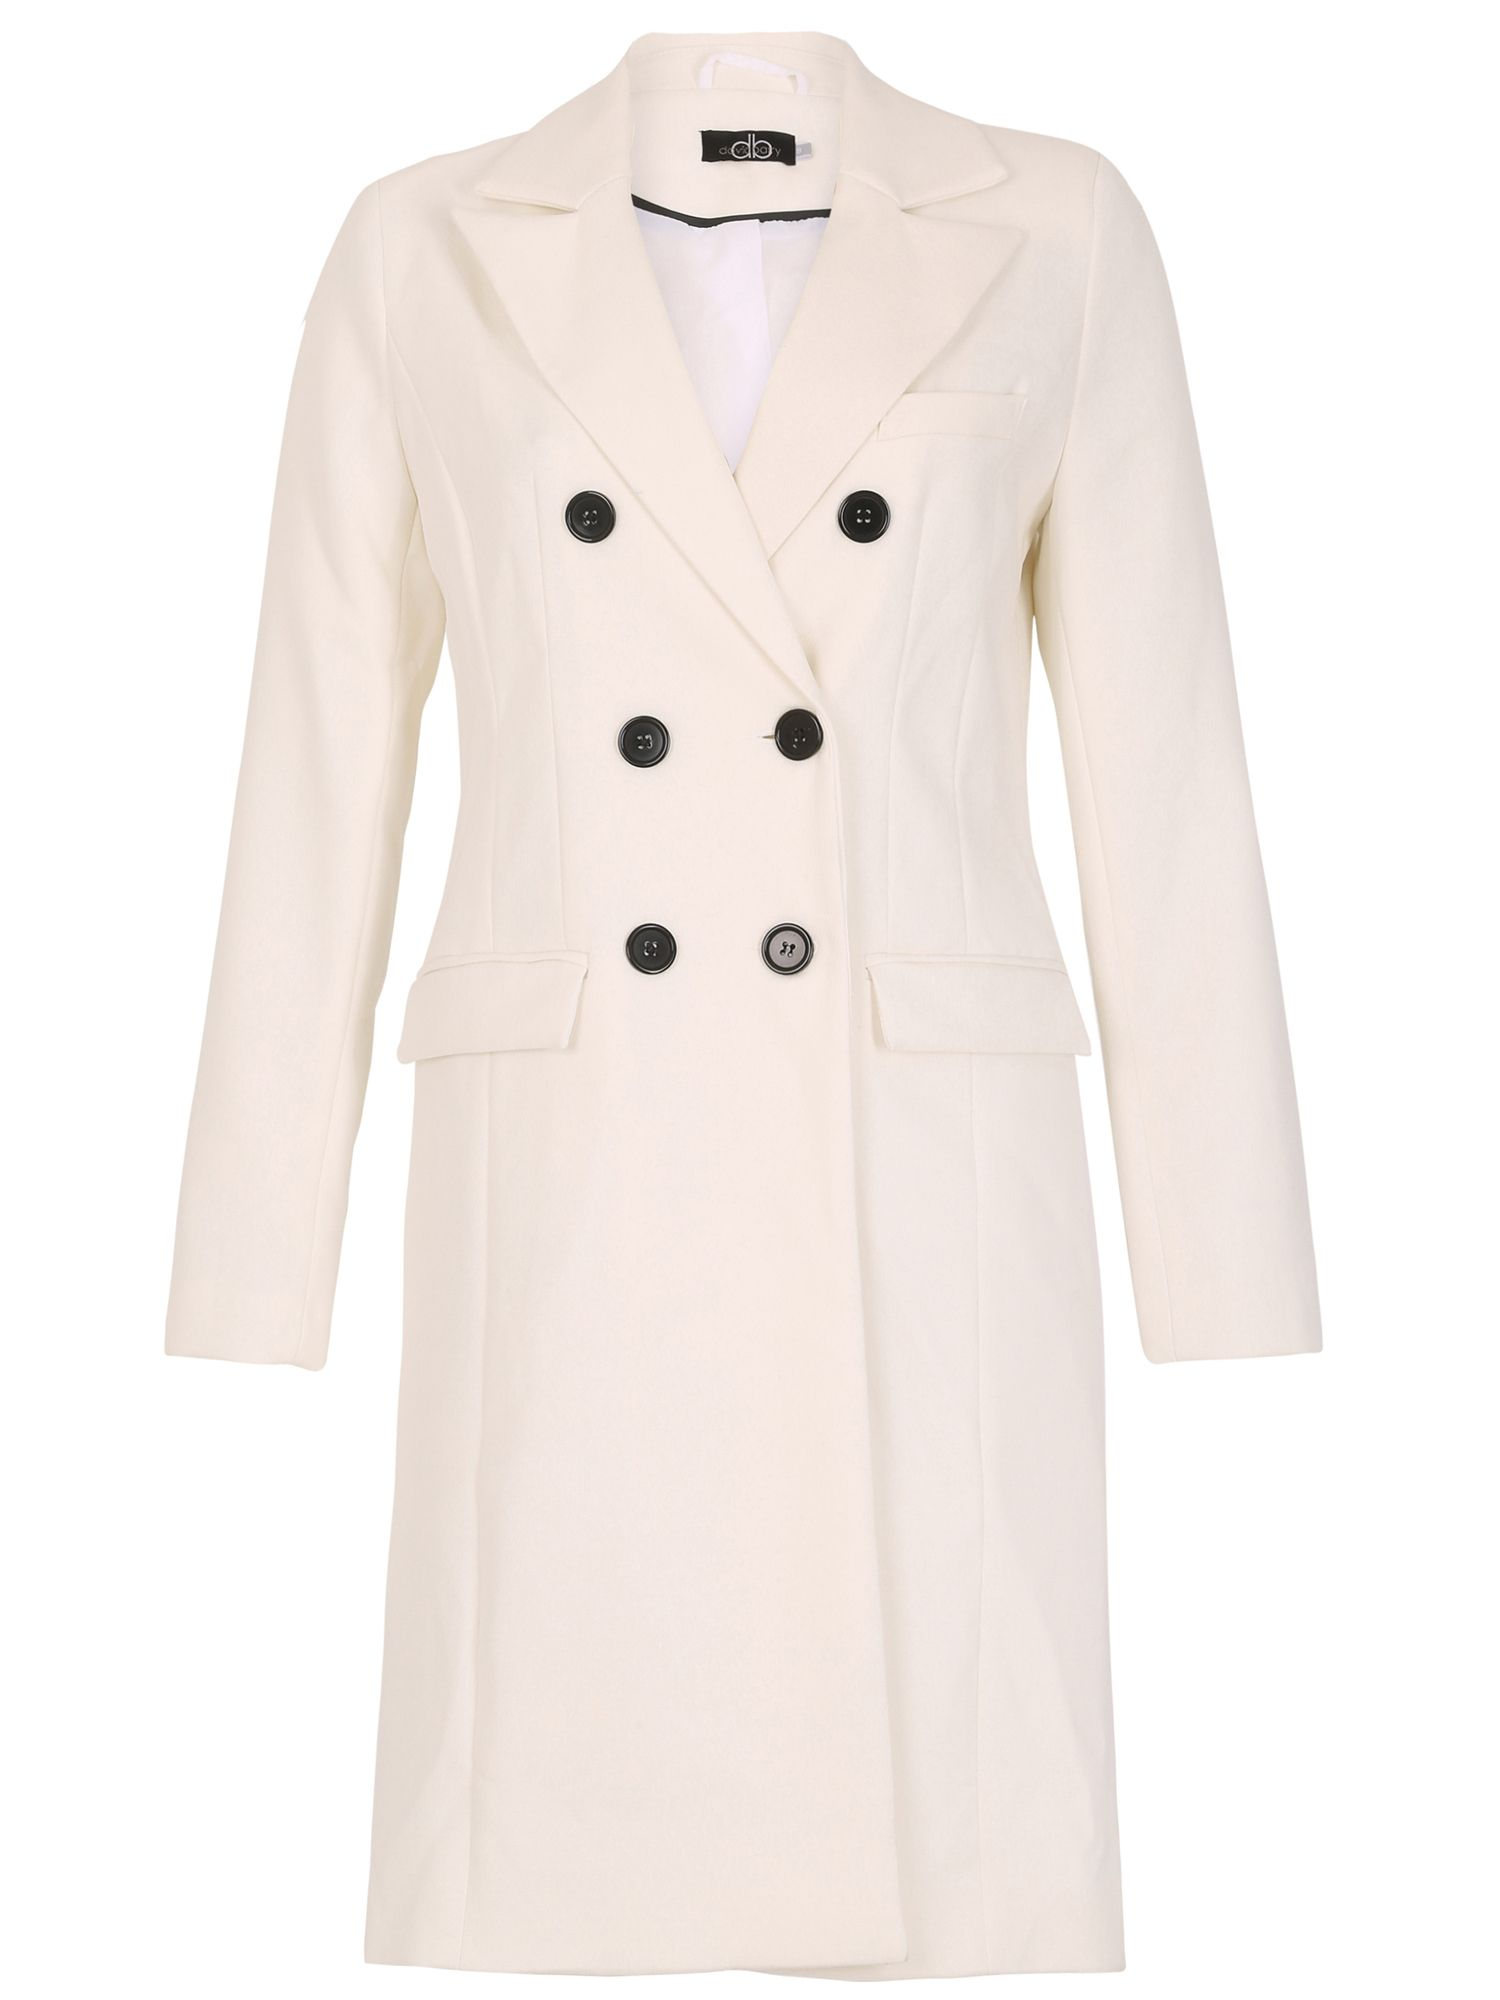 David Barry DB Lined Coat, White